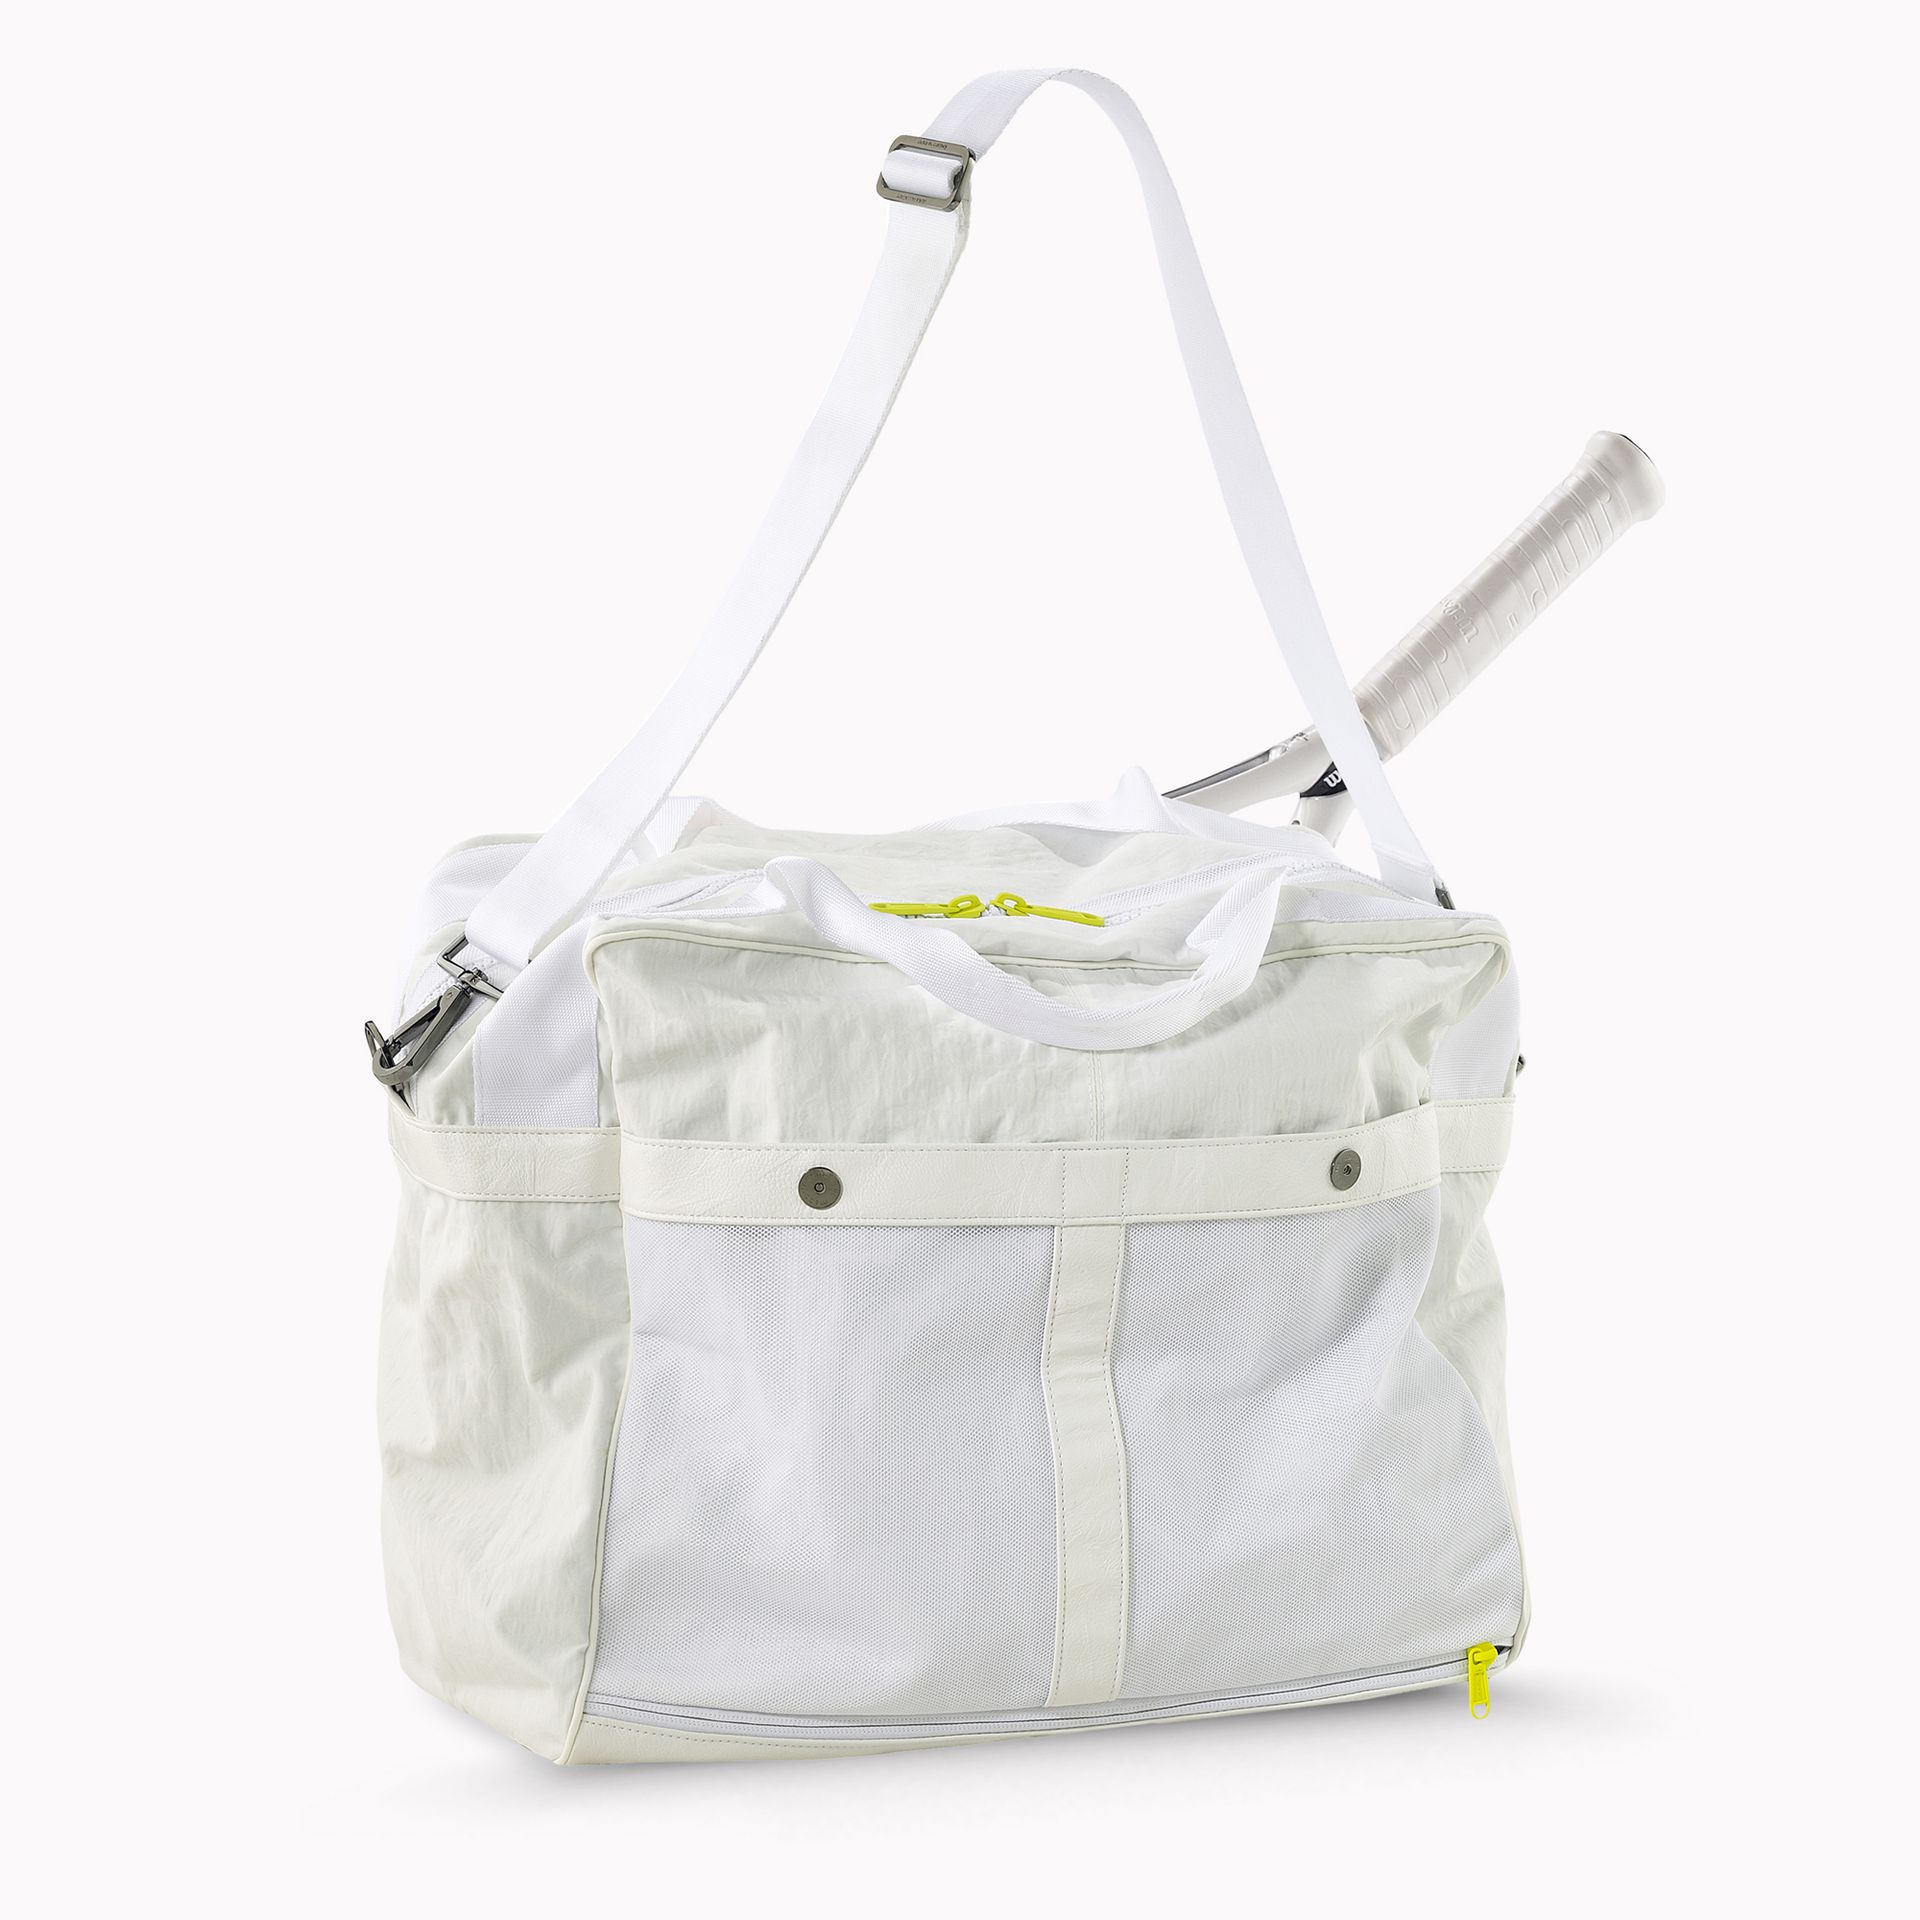 203f0fa0ed Adidas Stella Mccartney Tennis Bag White